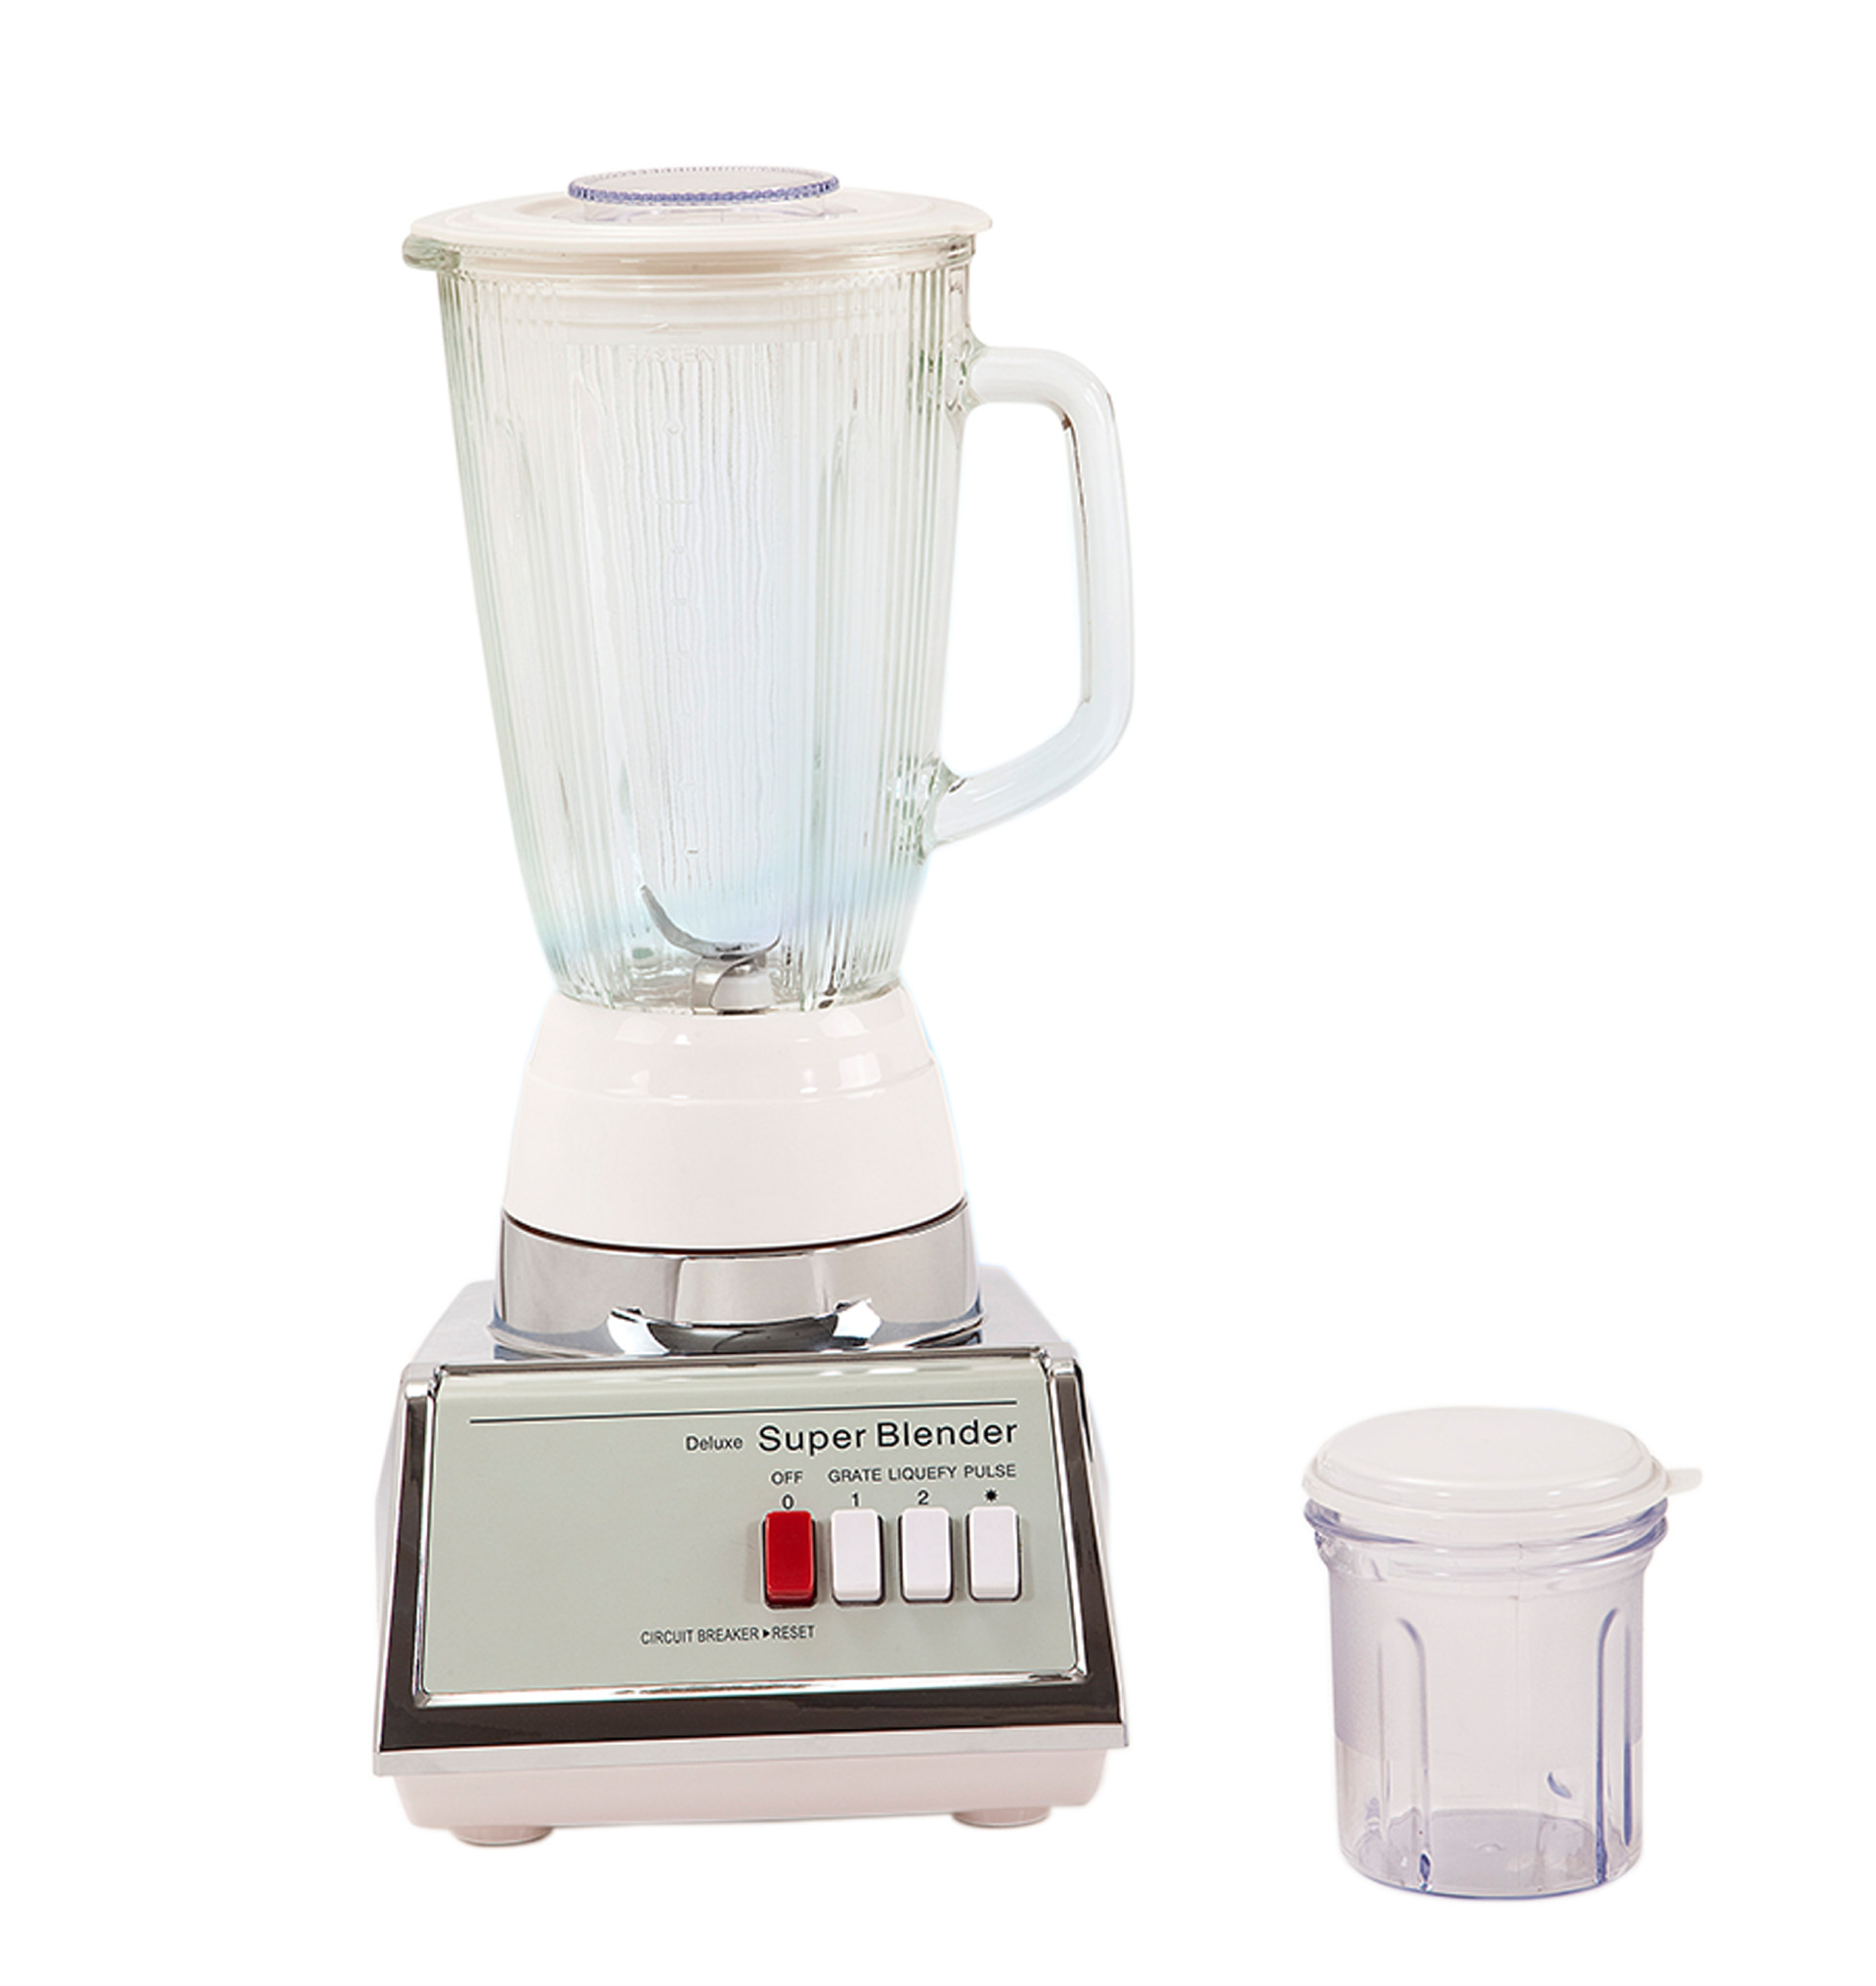 Geuwa Quality Metalic Body Electric Food Blender Kd-316